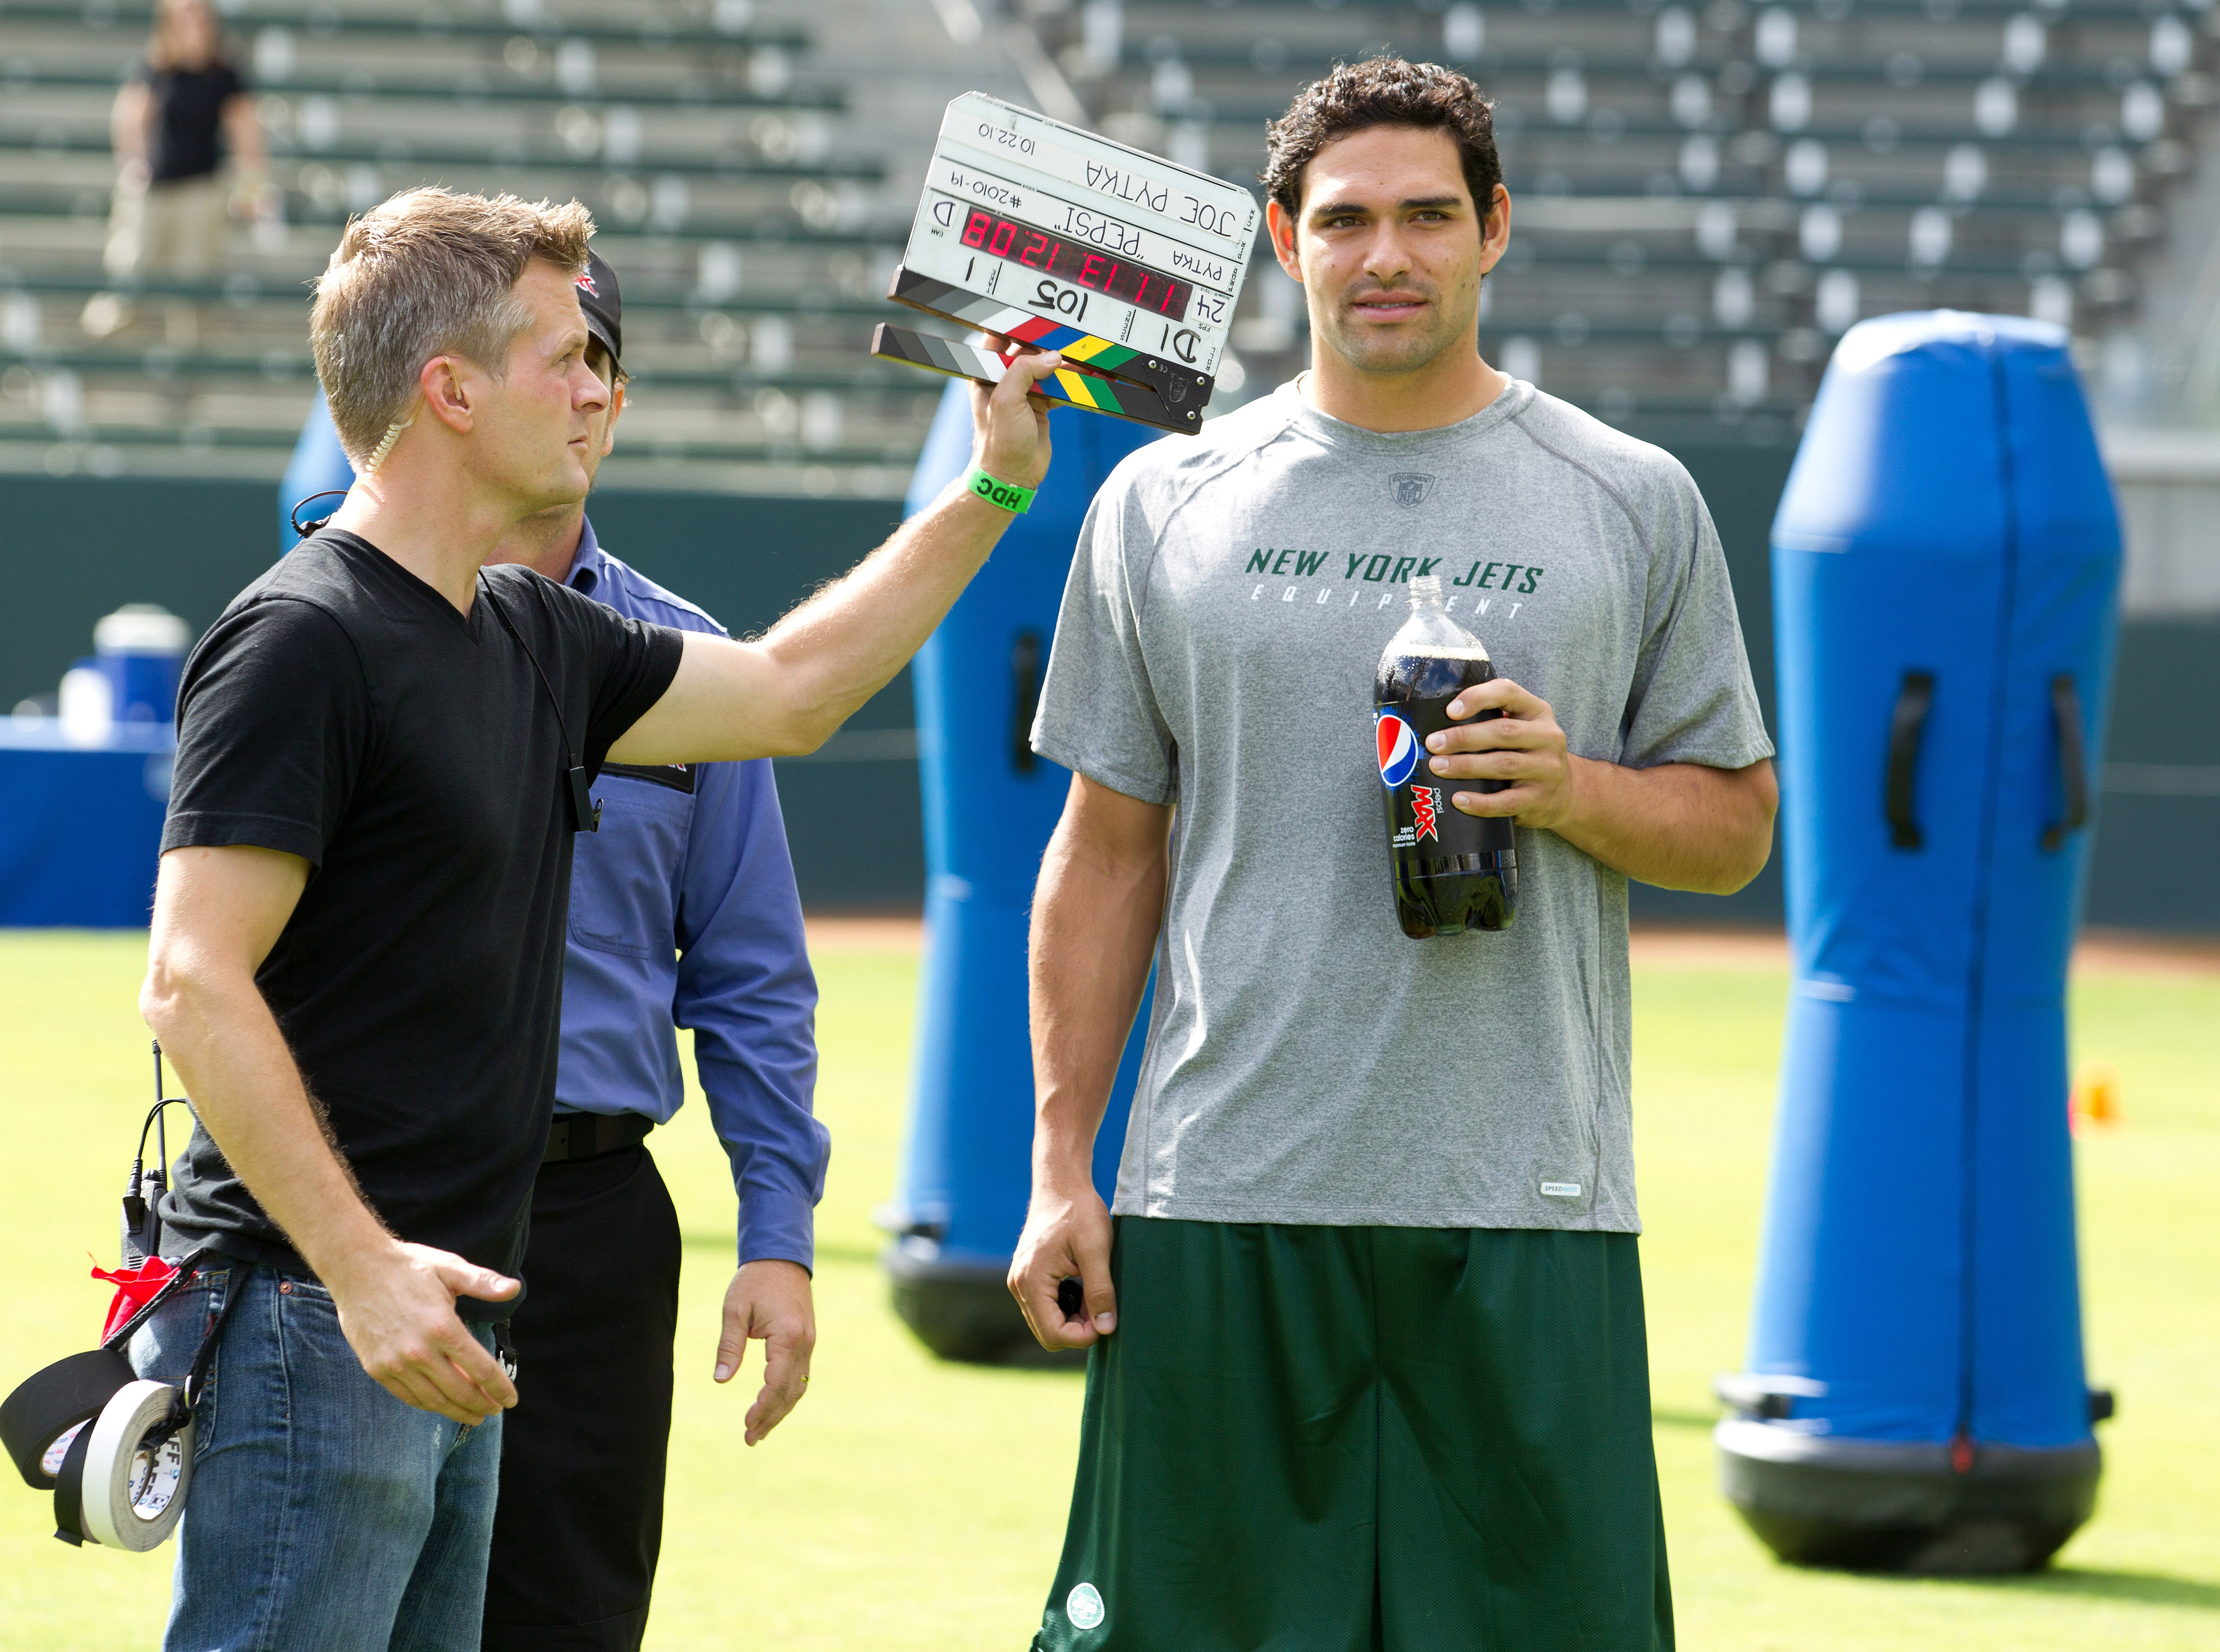 CARSON, CA - OCTOBER 22:  New York Jets quarterback Mark Sanchez shoots a scene with the Pepsi MAX driver on the set of the new zero calorie Pepsi MAX NFL commercial at The Home Depot Center on October 22, 2010 in Carson, California. The ad, which debuts